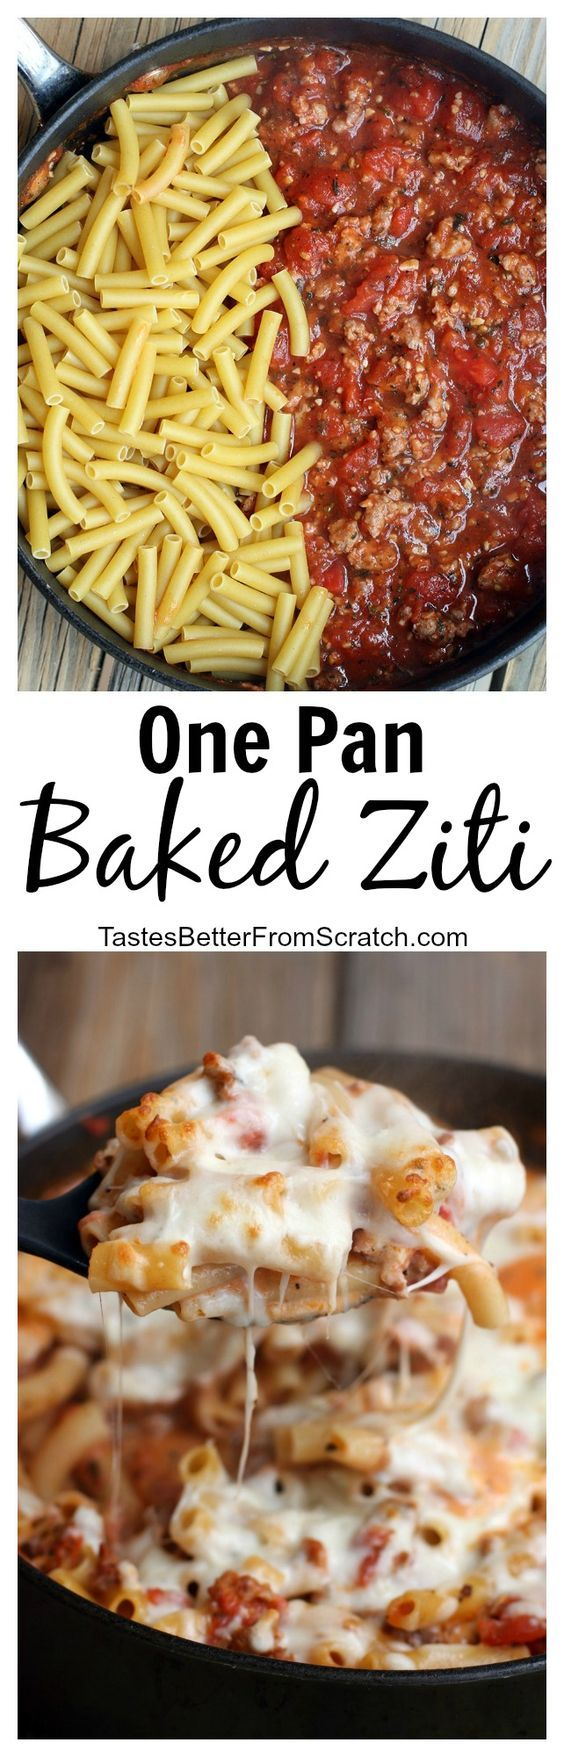 One Pan Baked Ziti Recipe | Tastes Better From Scratch